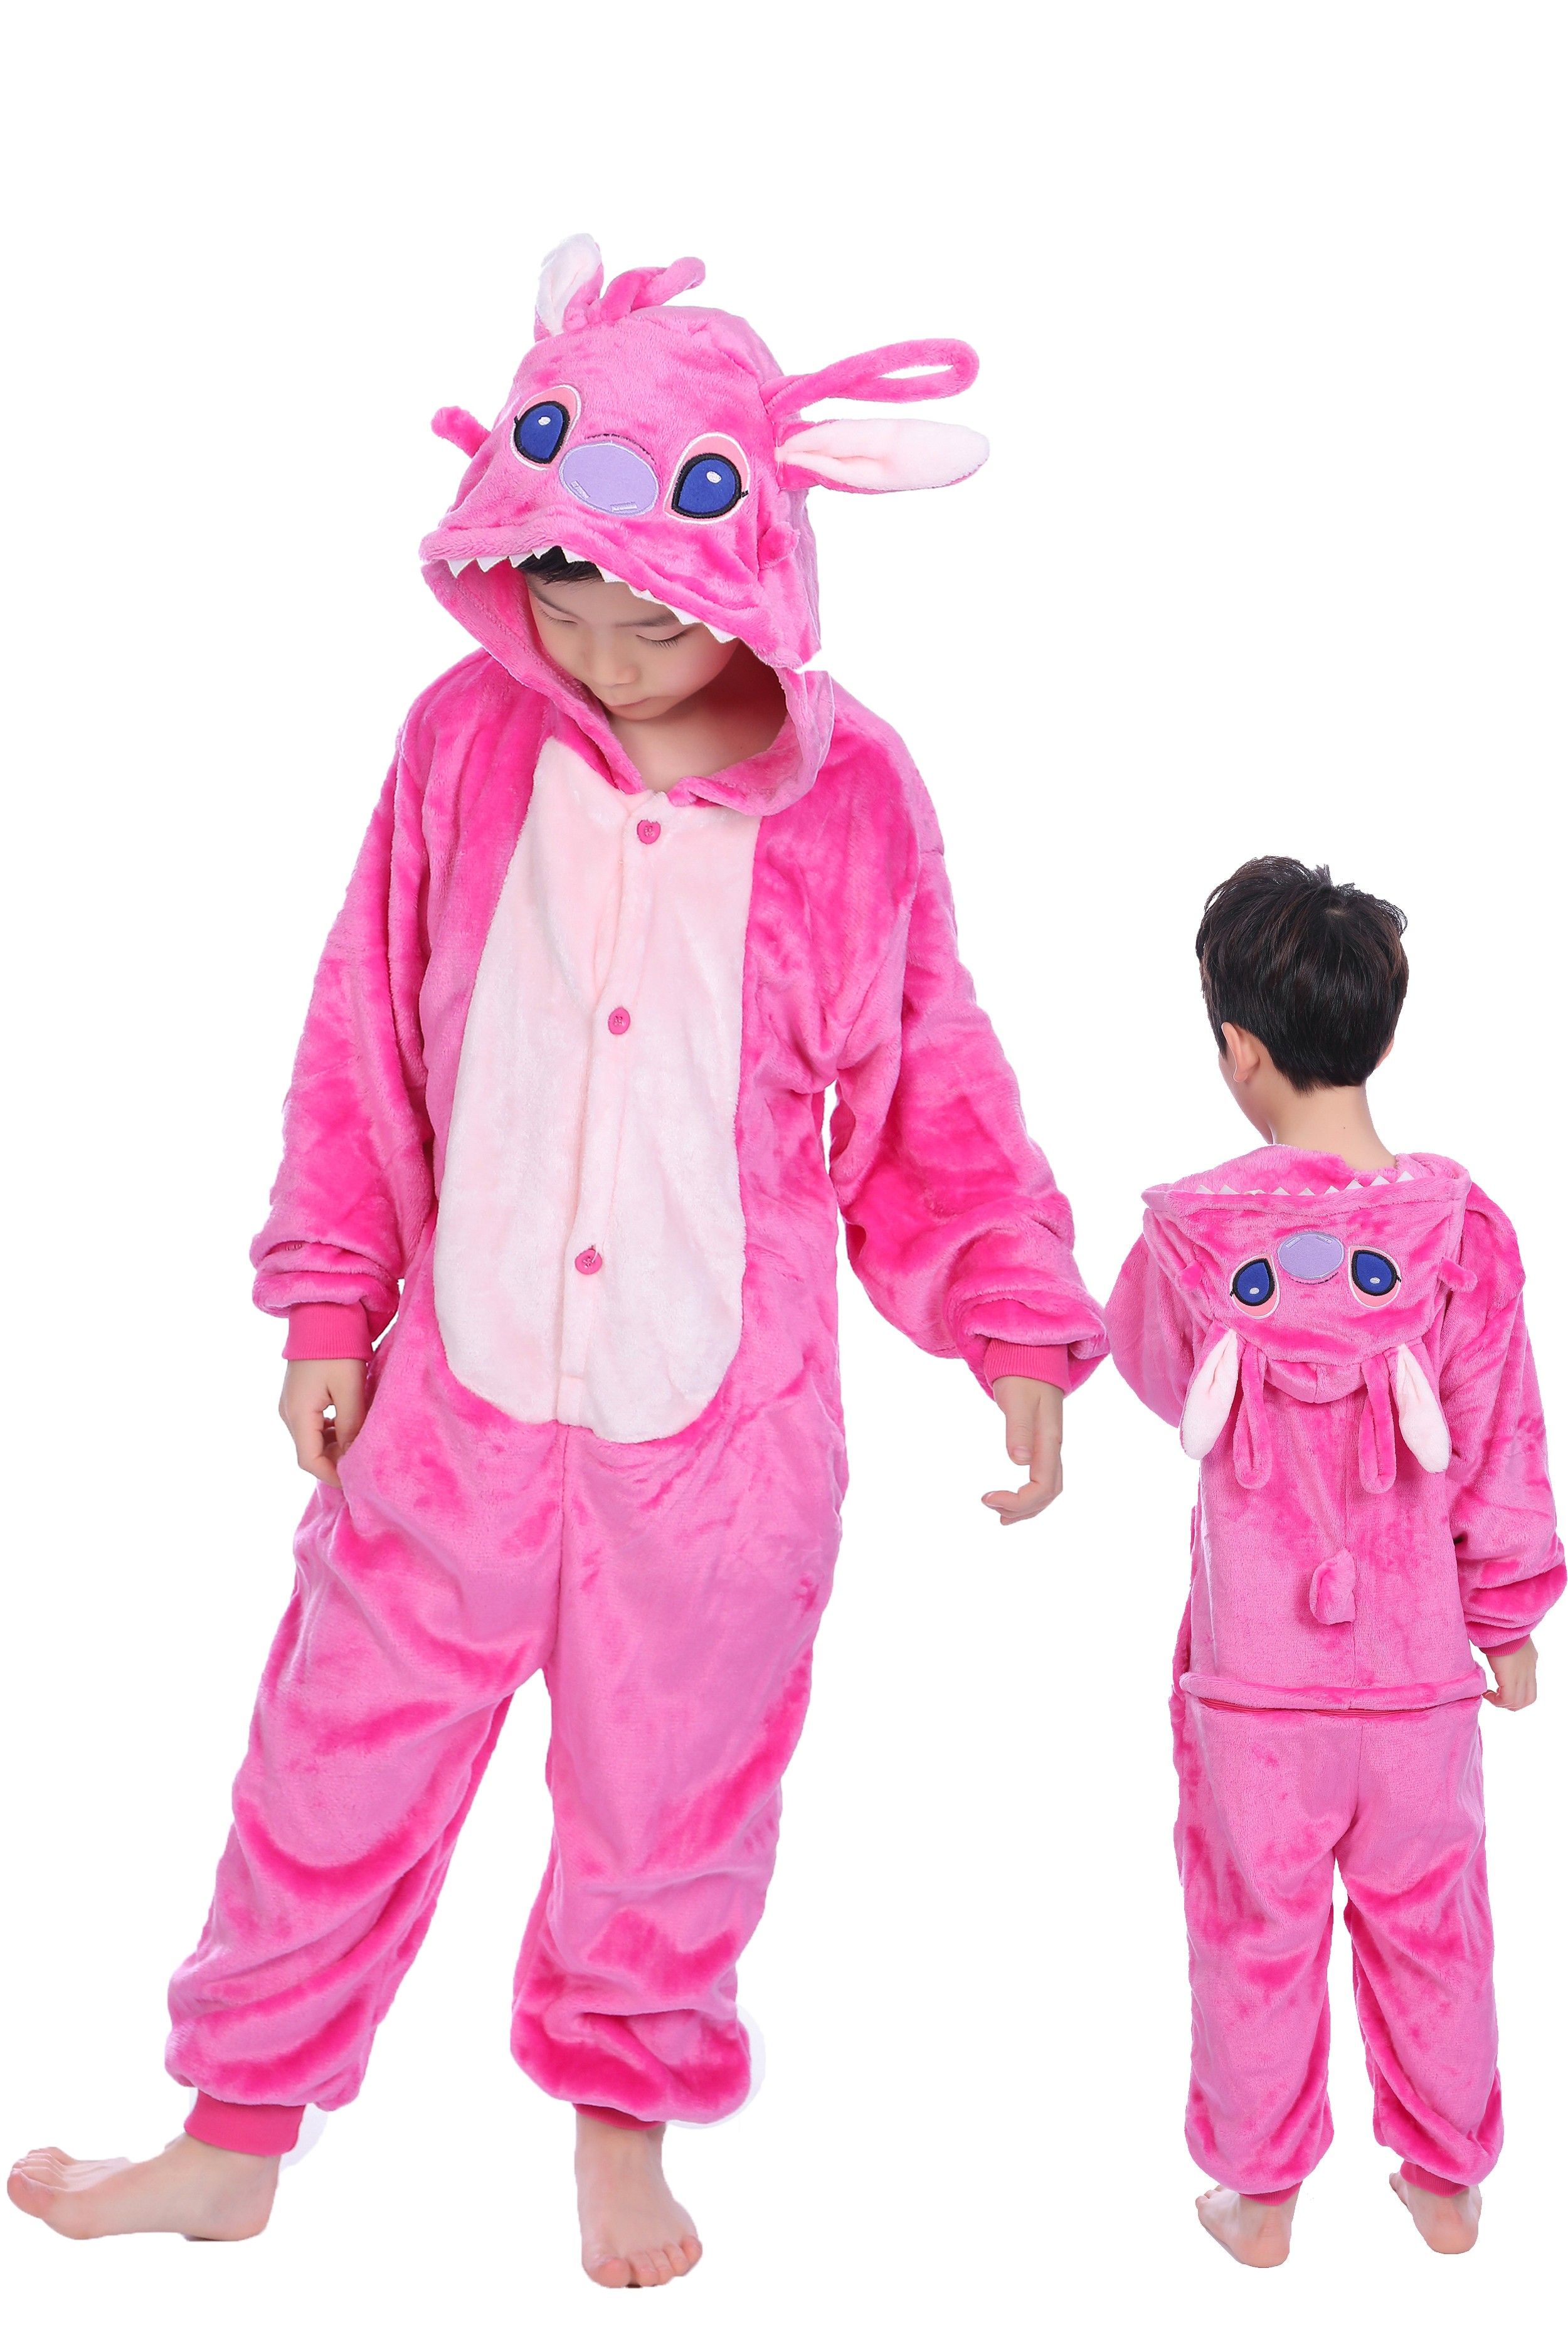 Flannel Pajamas With Animals For Kids